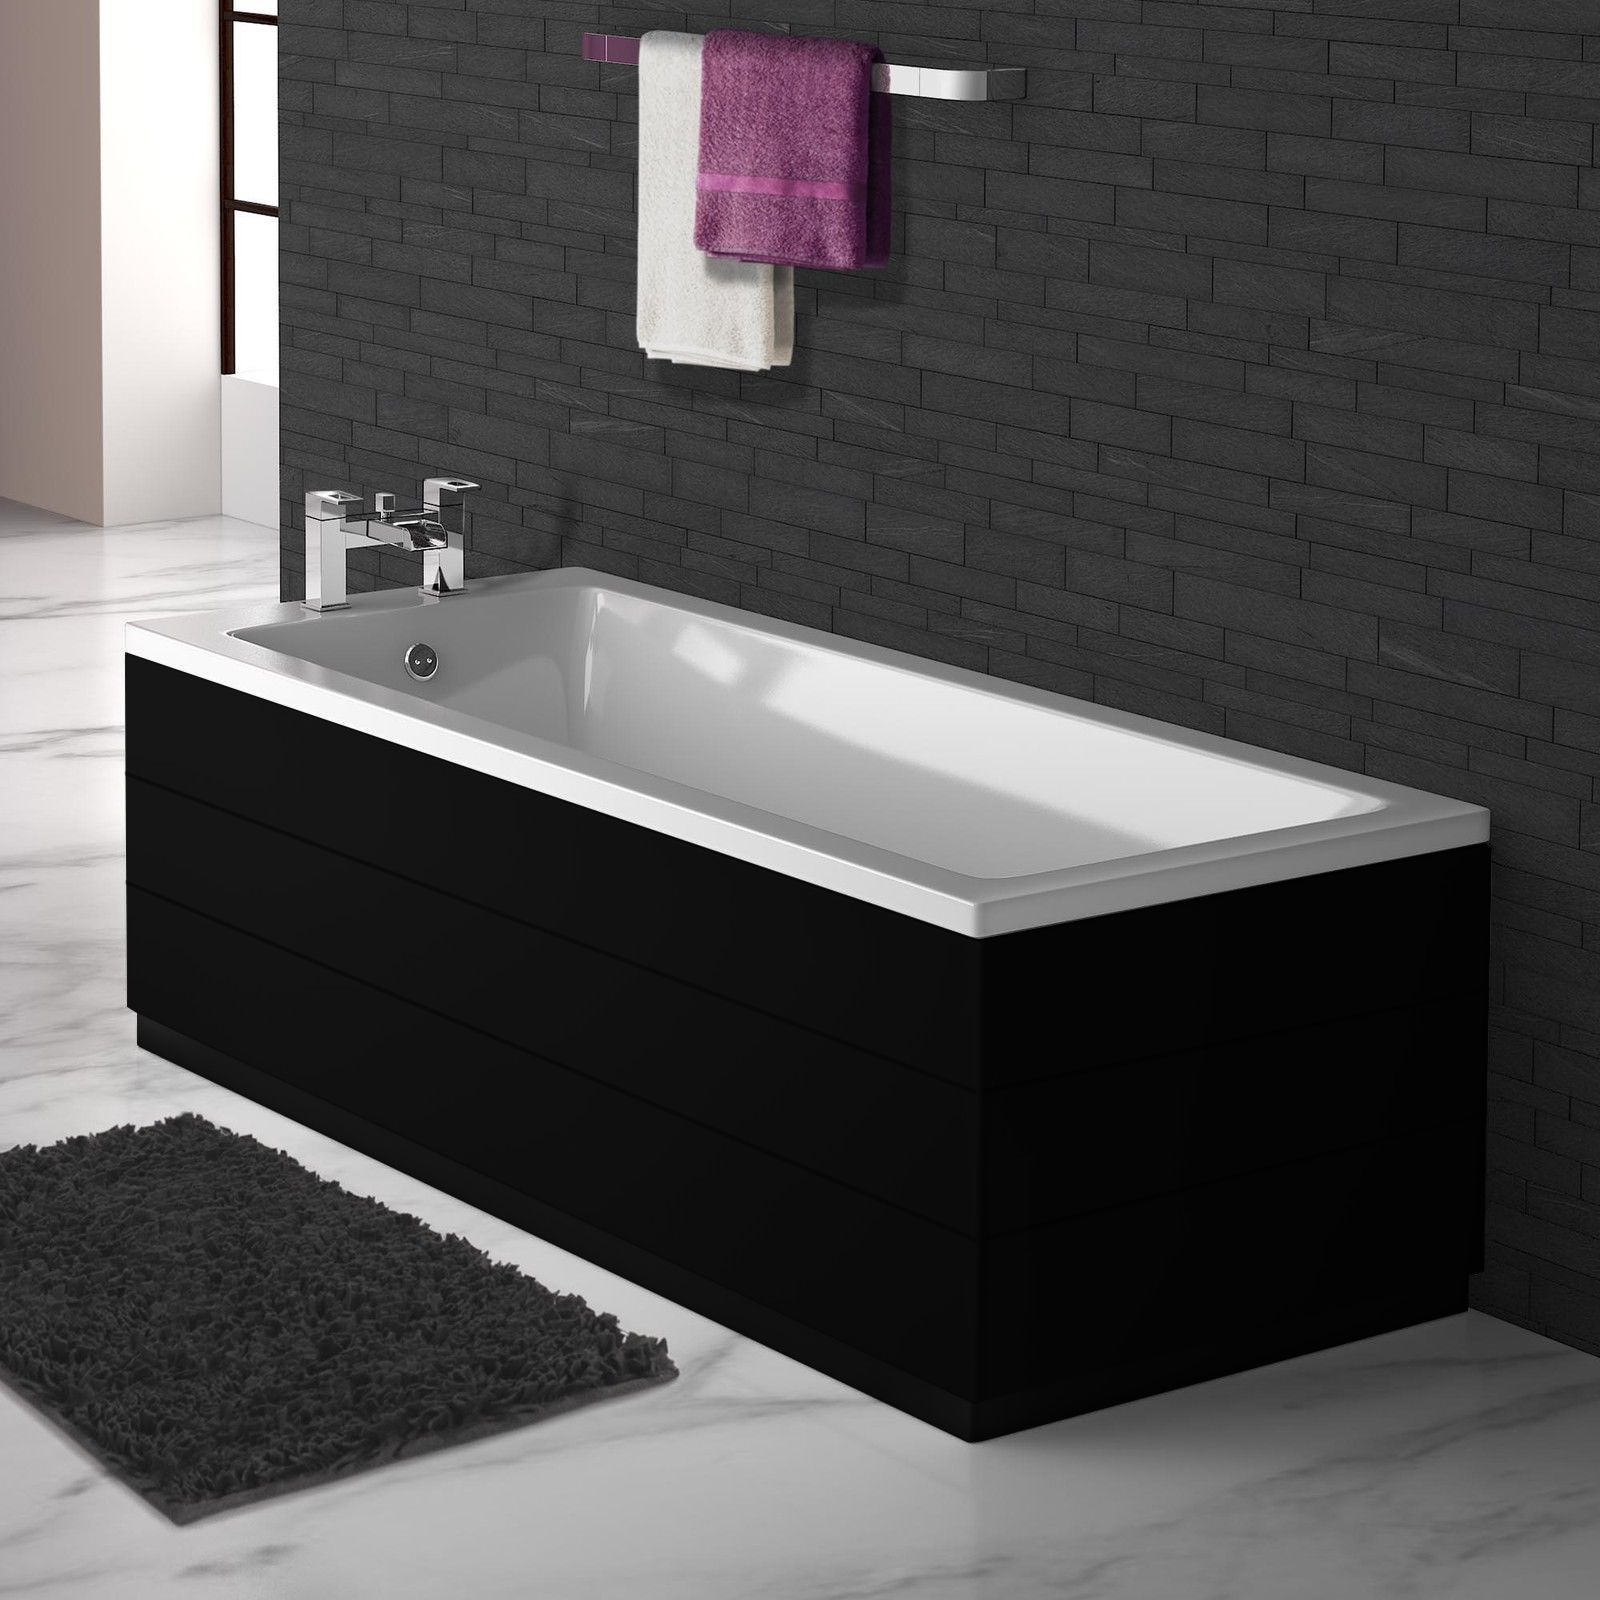 Planked High Gloss Black 2 Piece adjustable Bath Panels